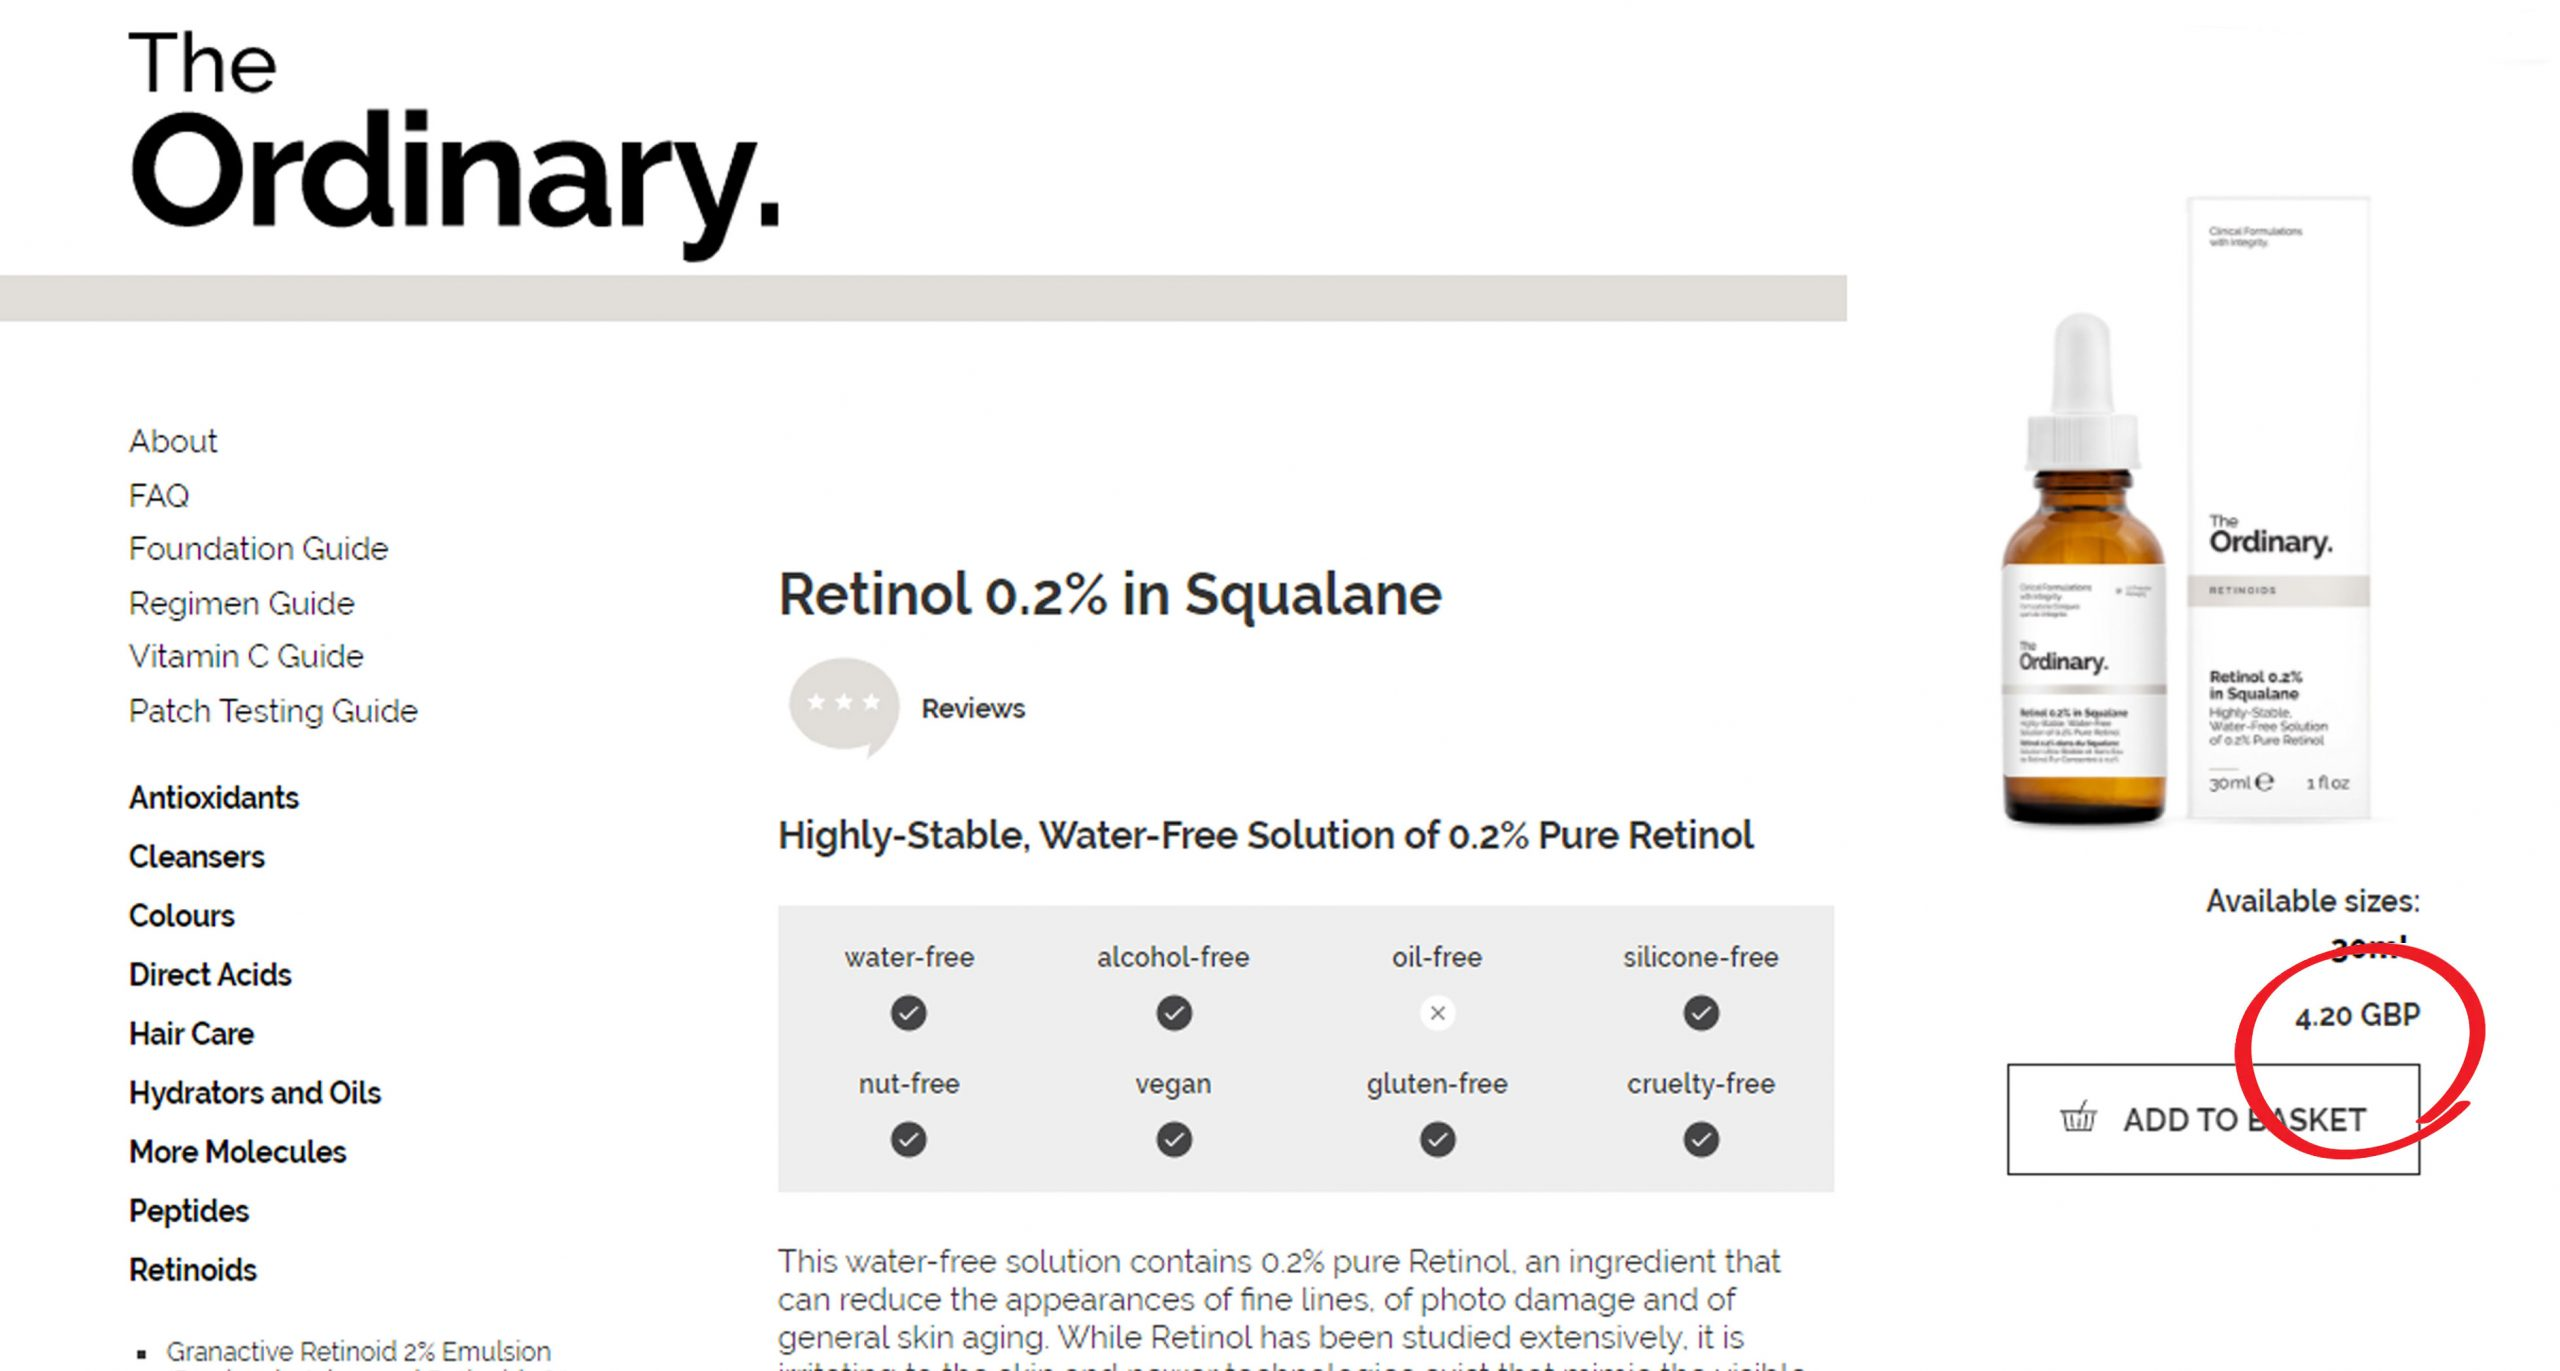 The Ordinary retinol review with retinoids from as little as £4.20. These are budget retinoids in concentrations which work.